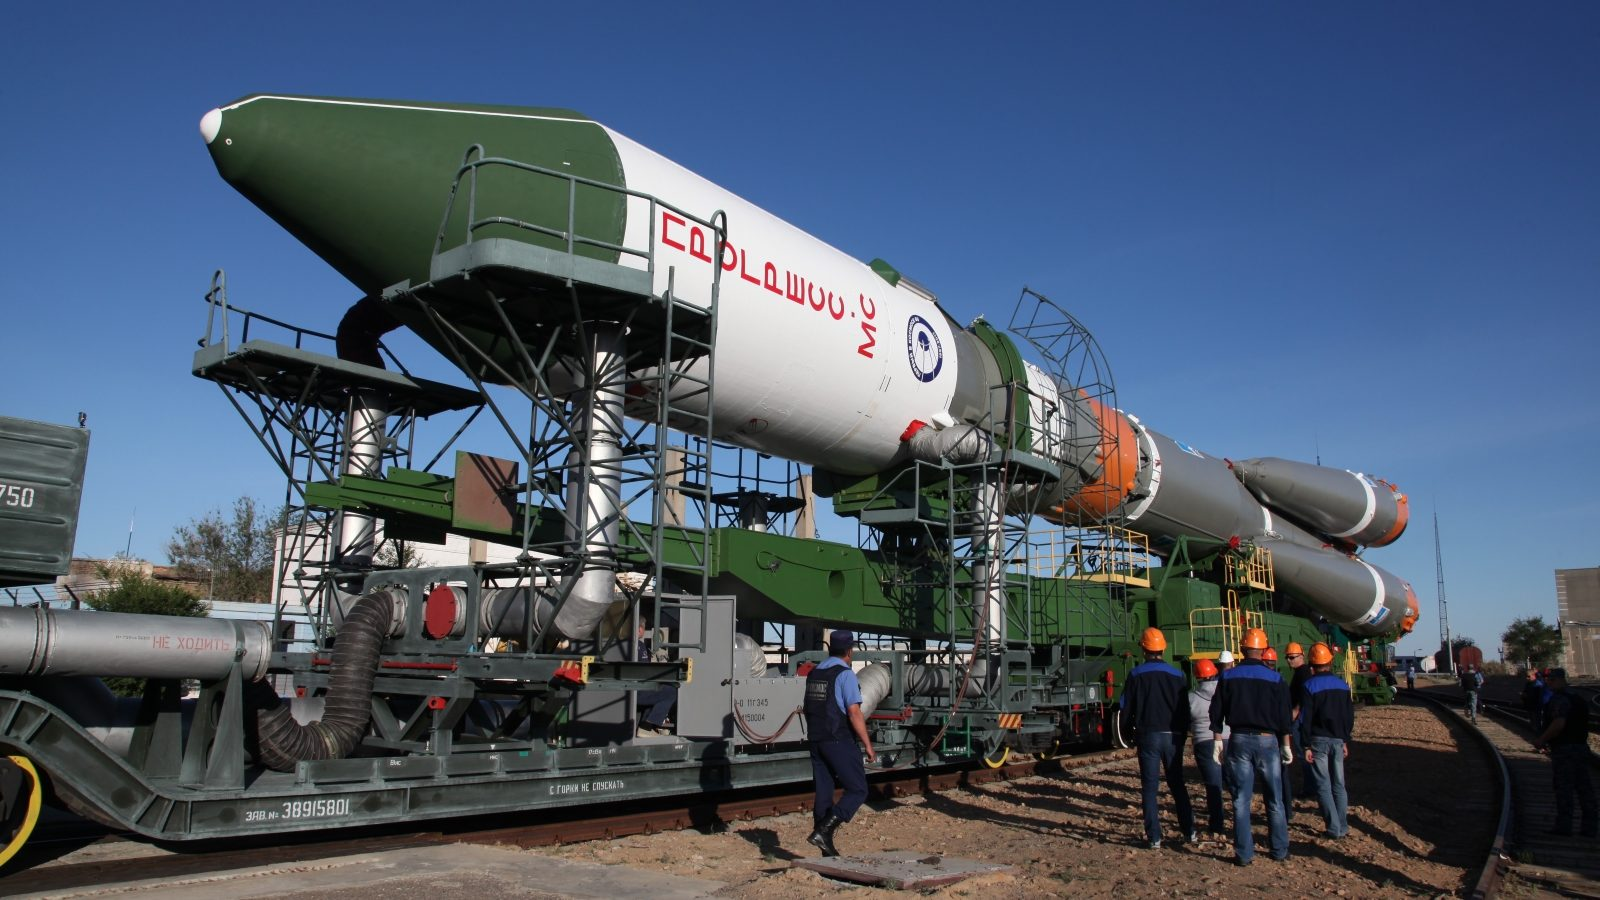 Soyuz 2.1a / Progress MS-06 rollout